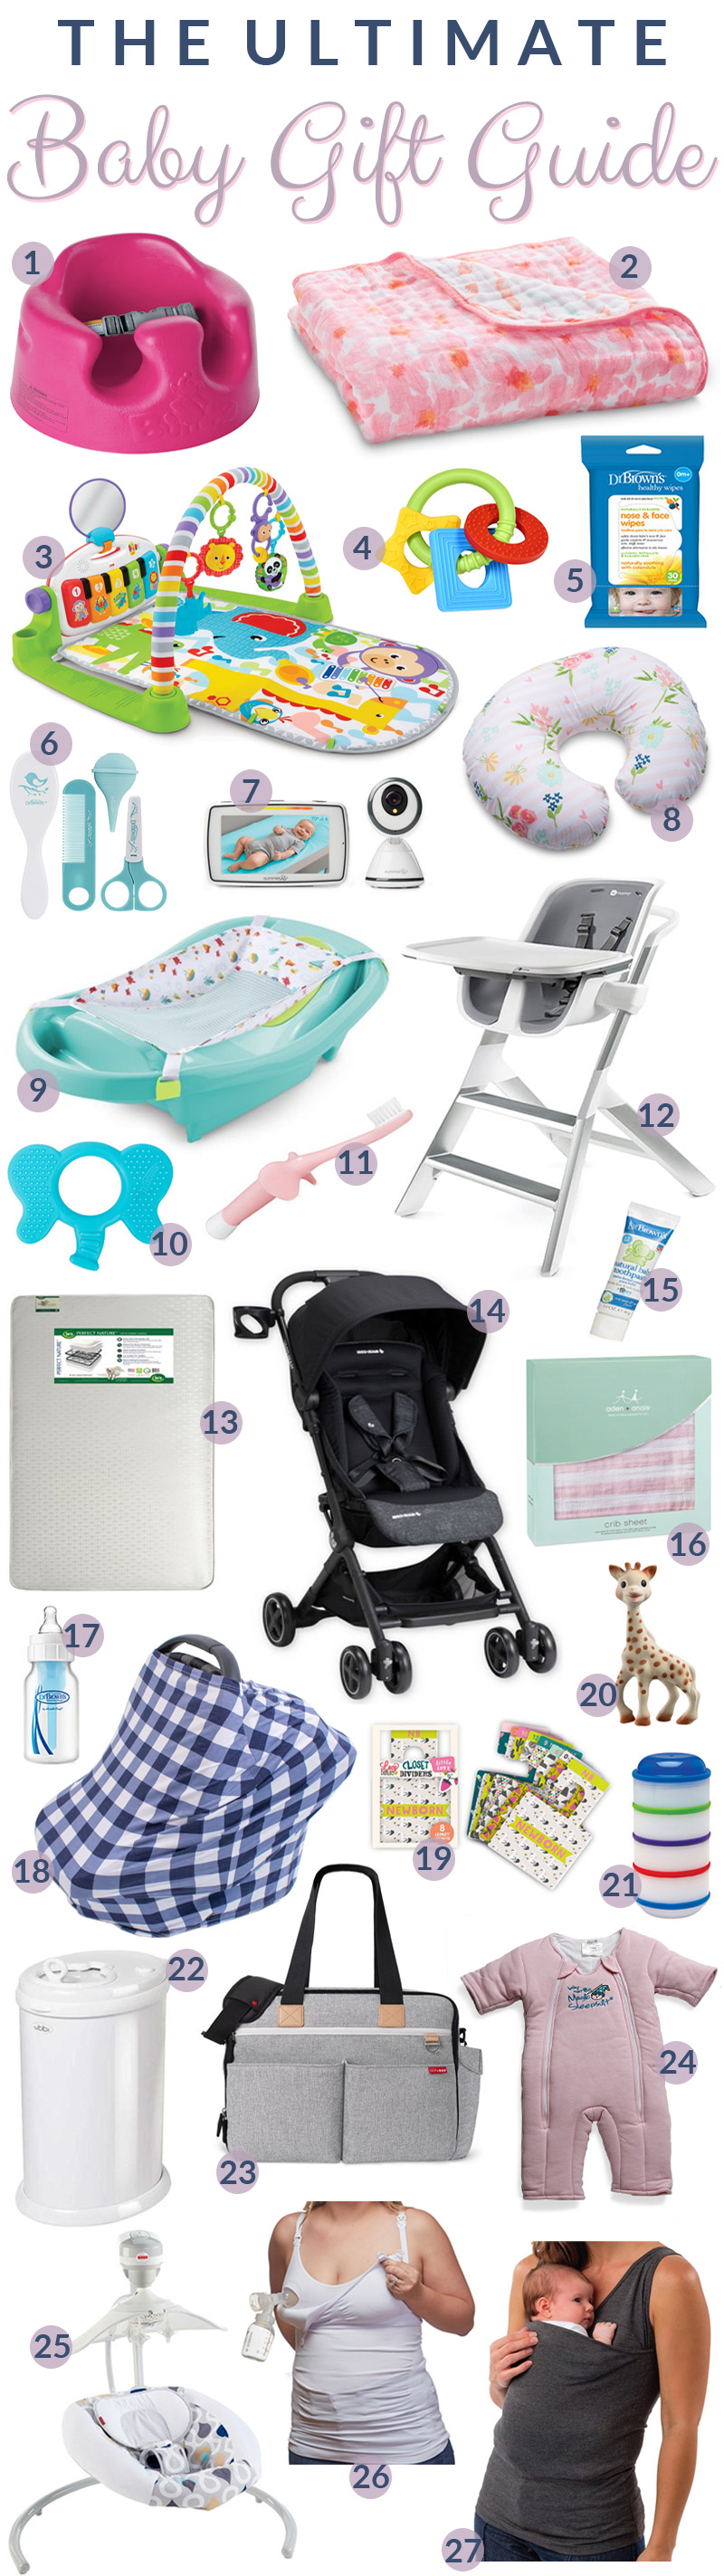 Best gift ideas for babies featured by top US lifestyle blog, Walking in Memphis in High Heels